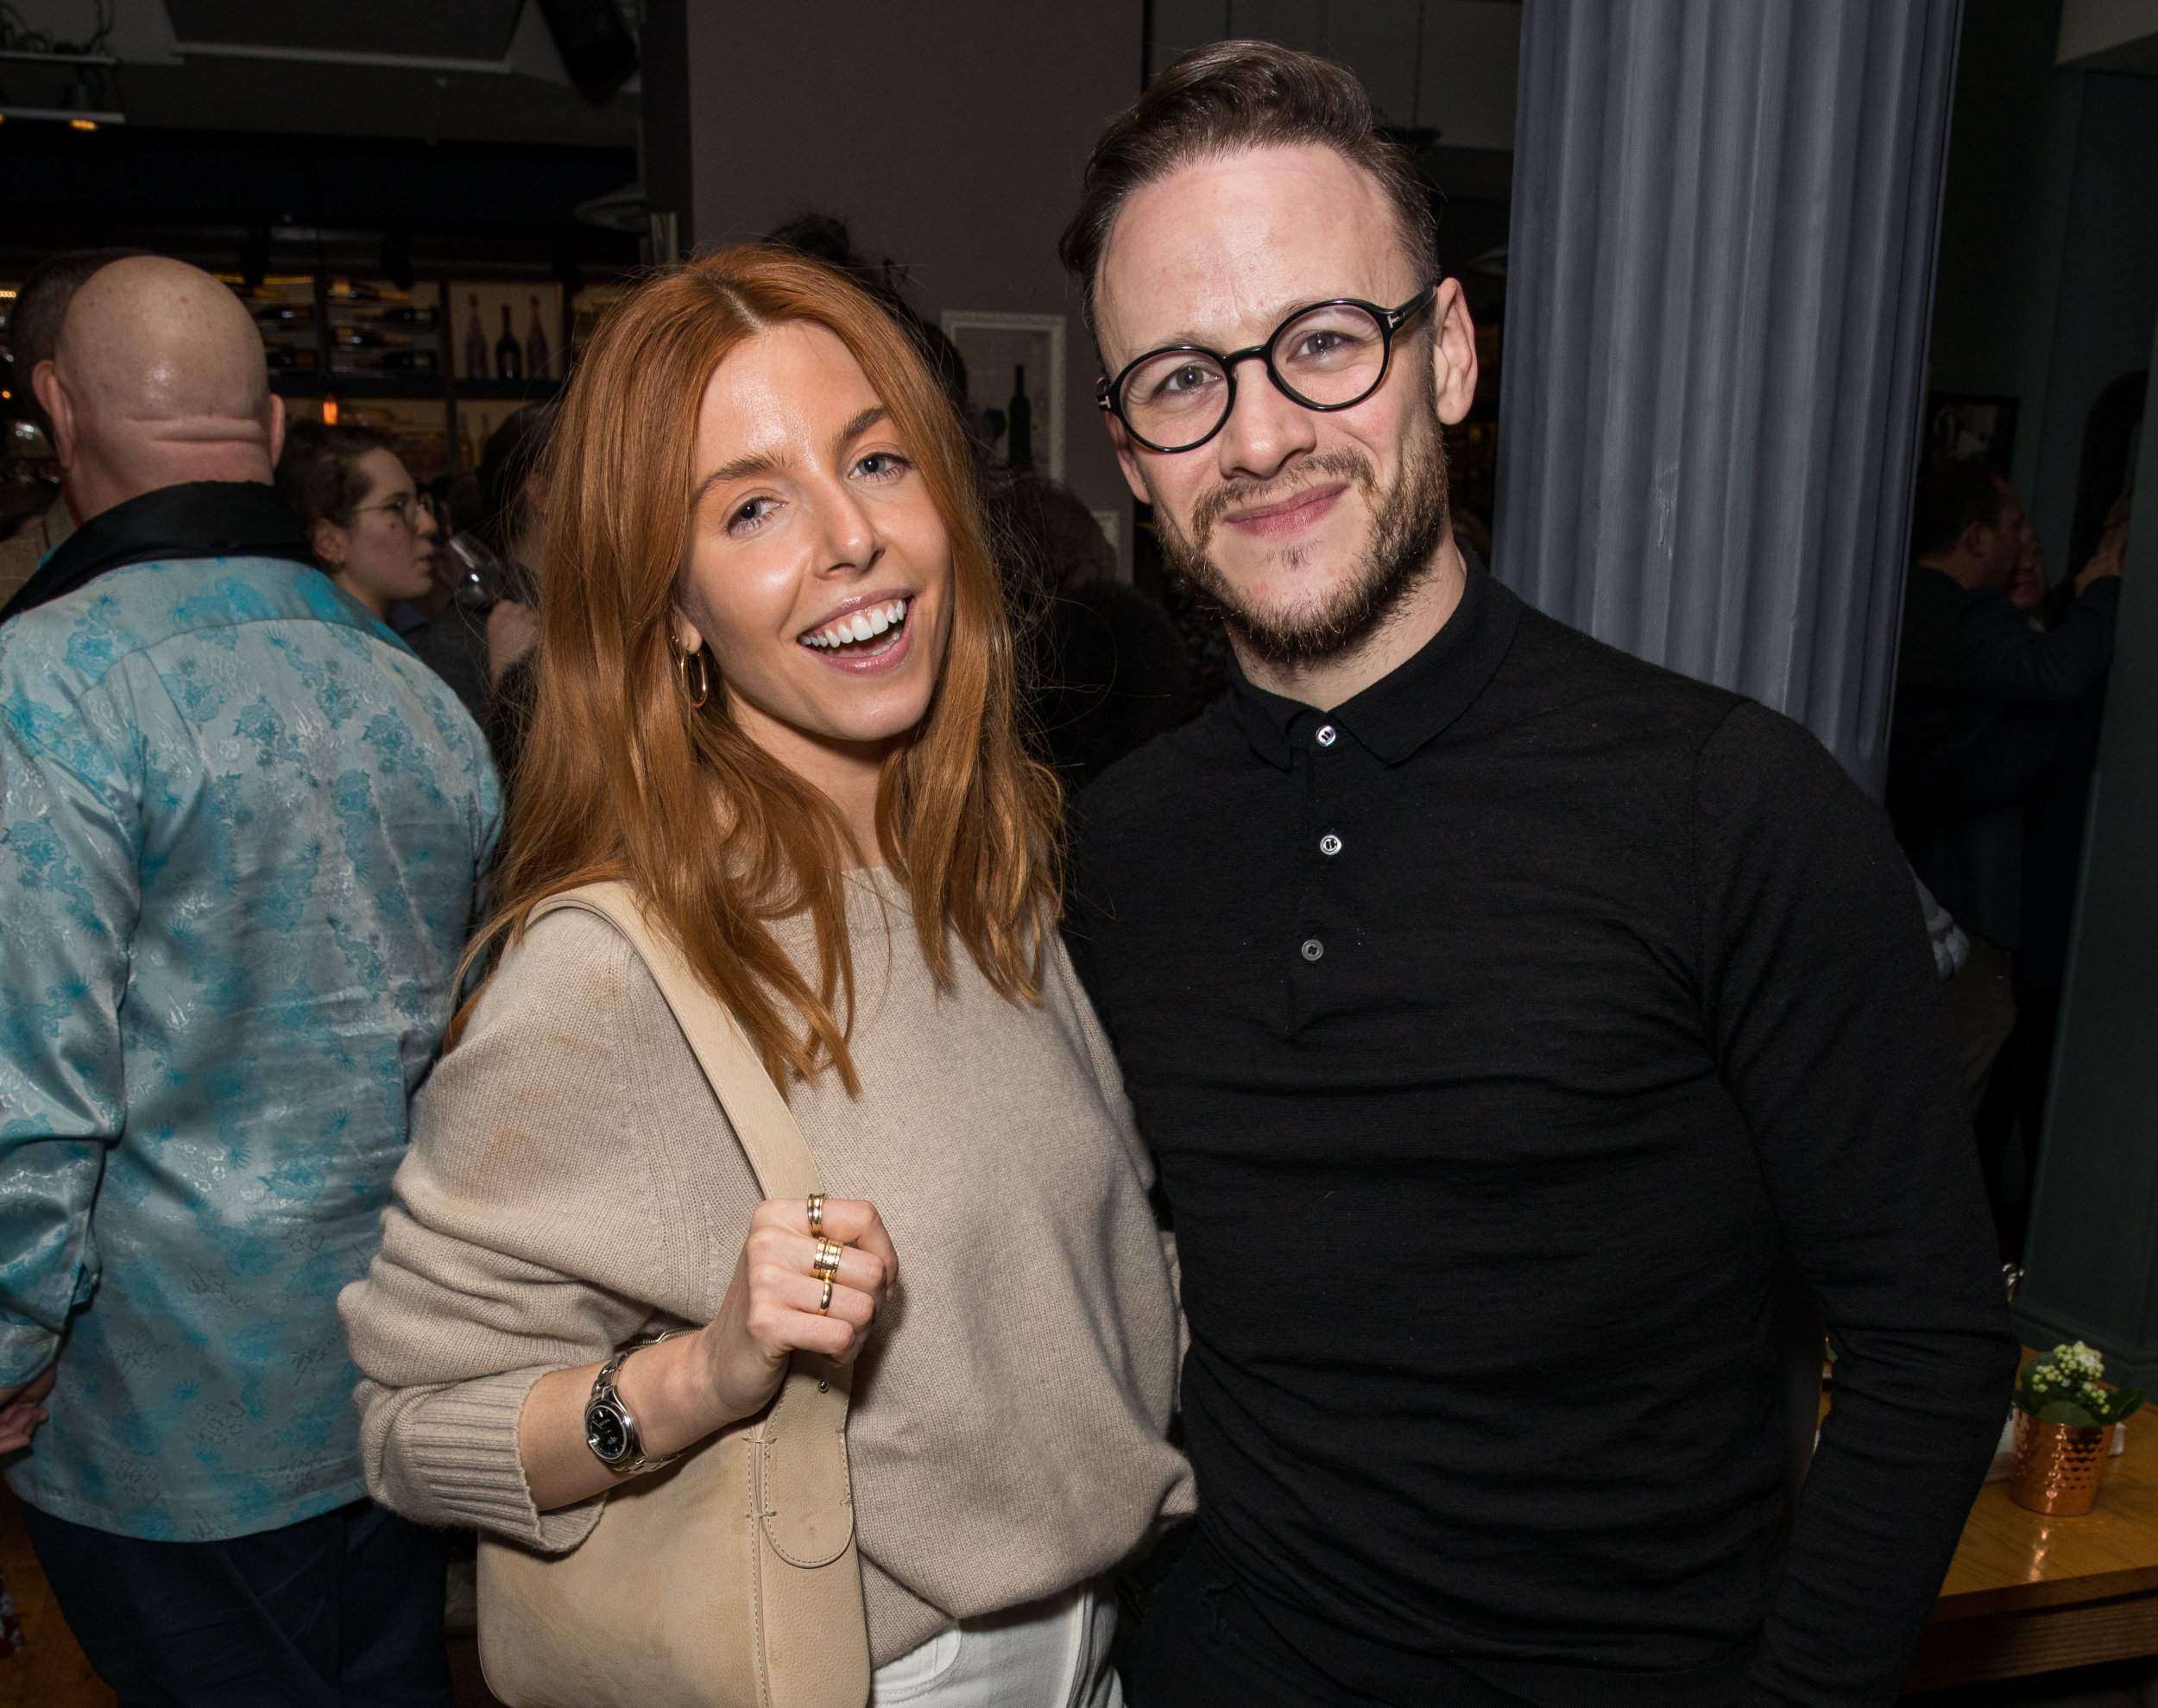 Stacey Dooley 'warned by friends' that Kevin Clifton romance could be bad for her image